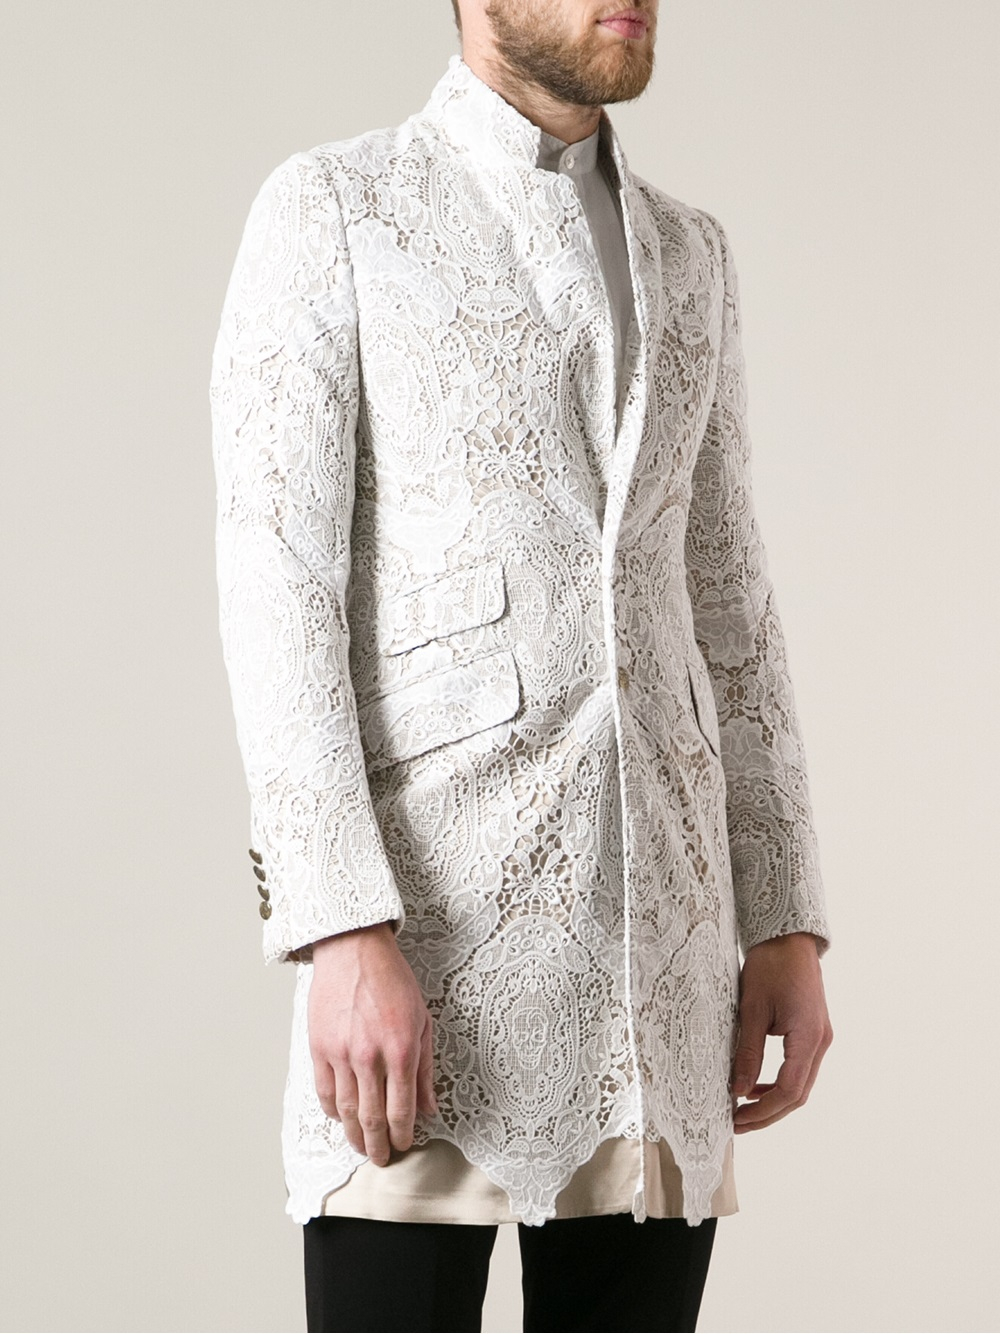 Alexander mcqueen Lace Blazer in White for Men | Lyst